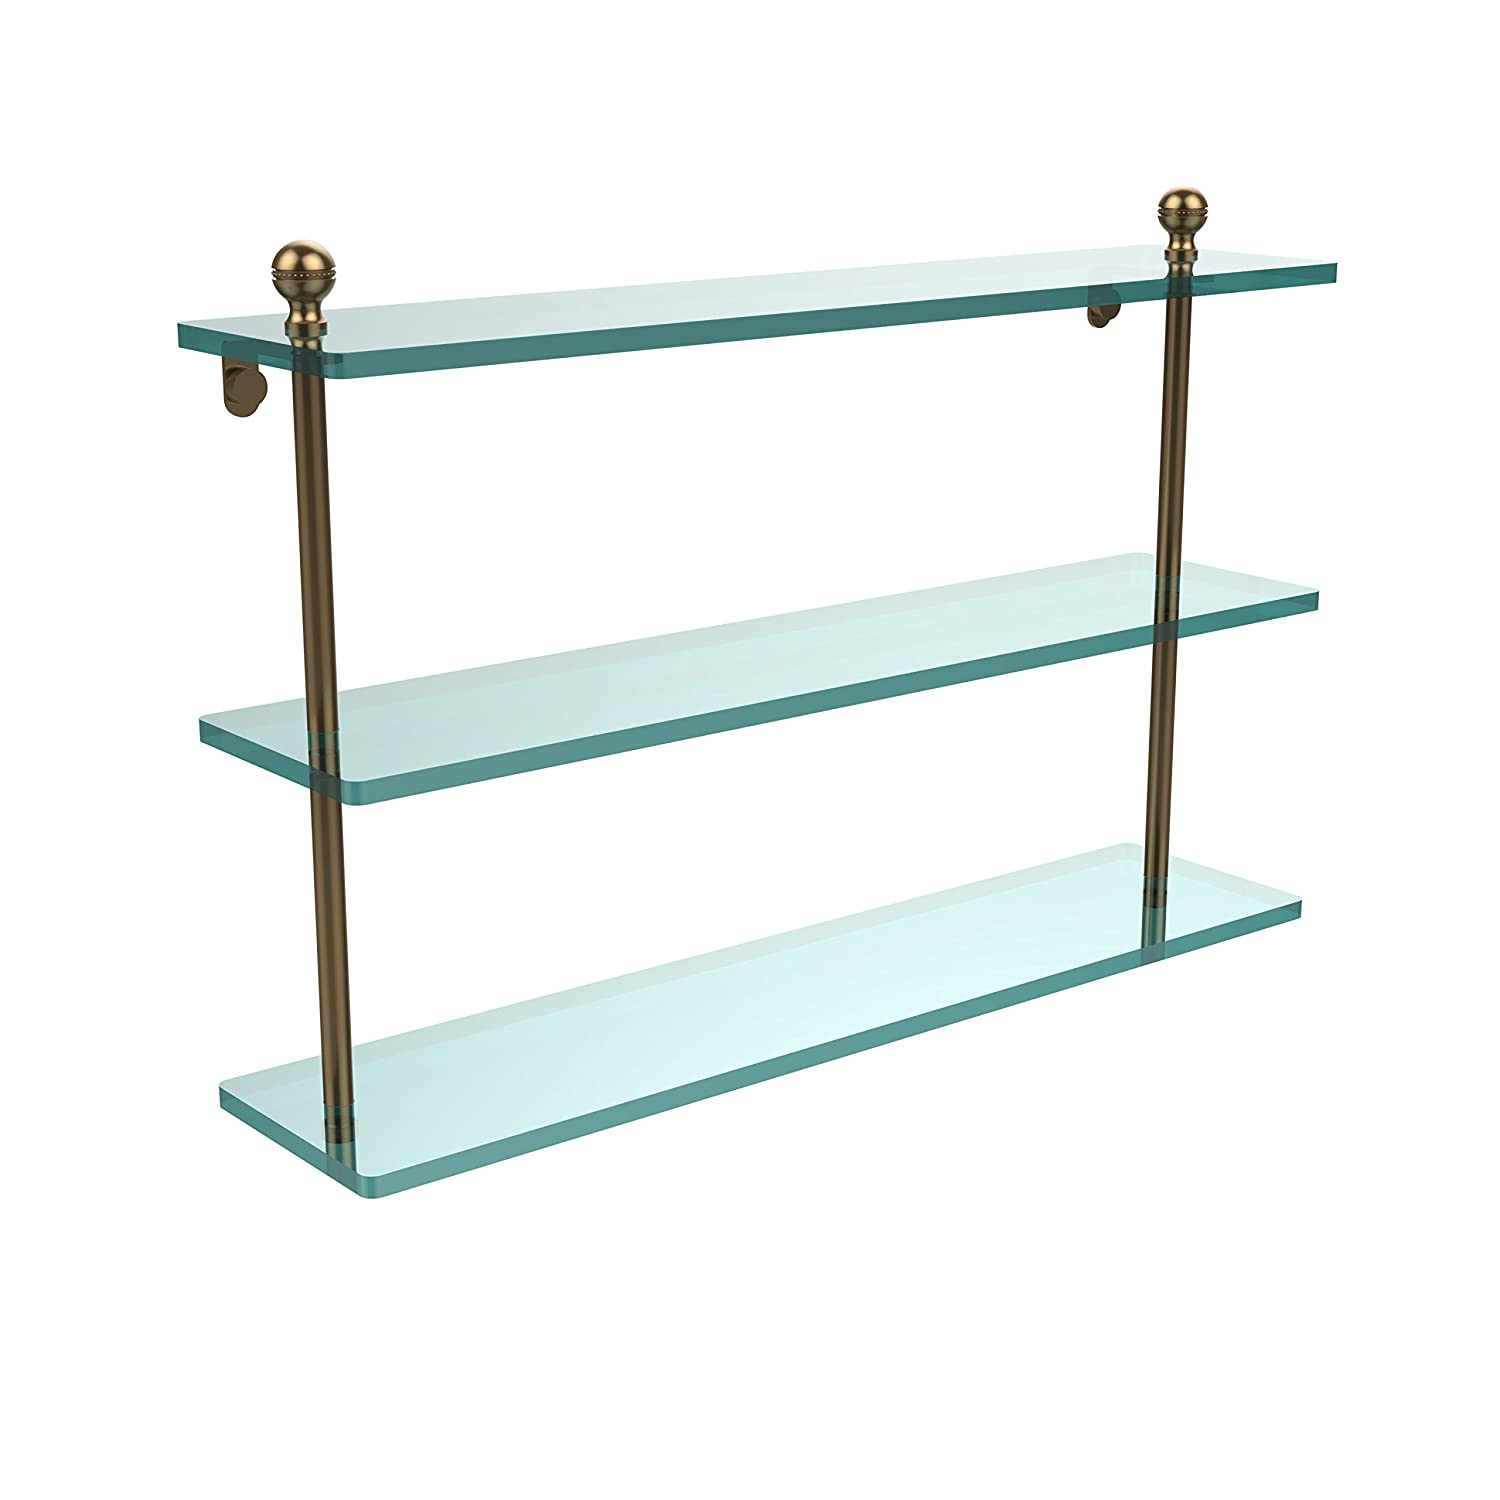 Allied Brass MA-5/22-BBR 22 Triple Glass Shelf Brushed Bronze by Allied Brass B003XRL0UG つや消しブロンズ つや消しブロンズ